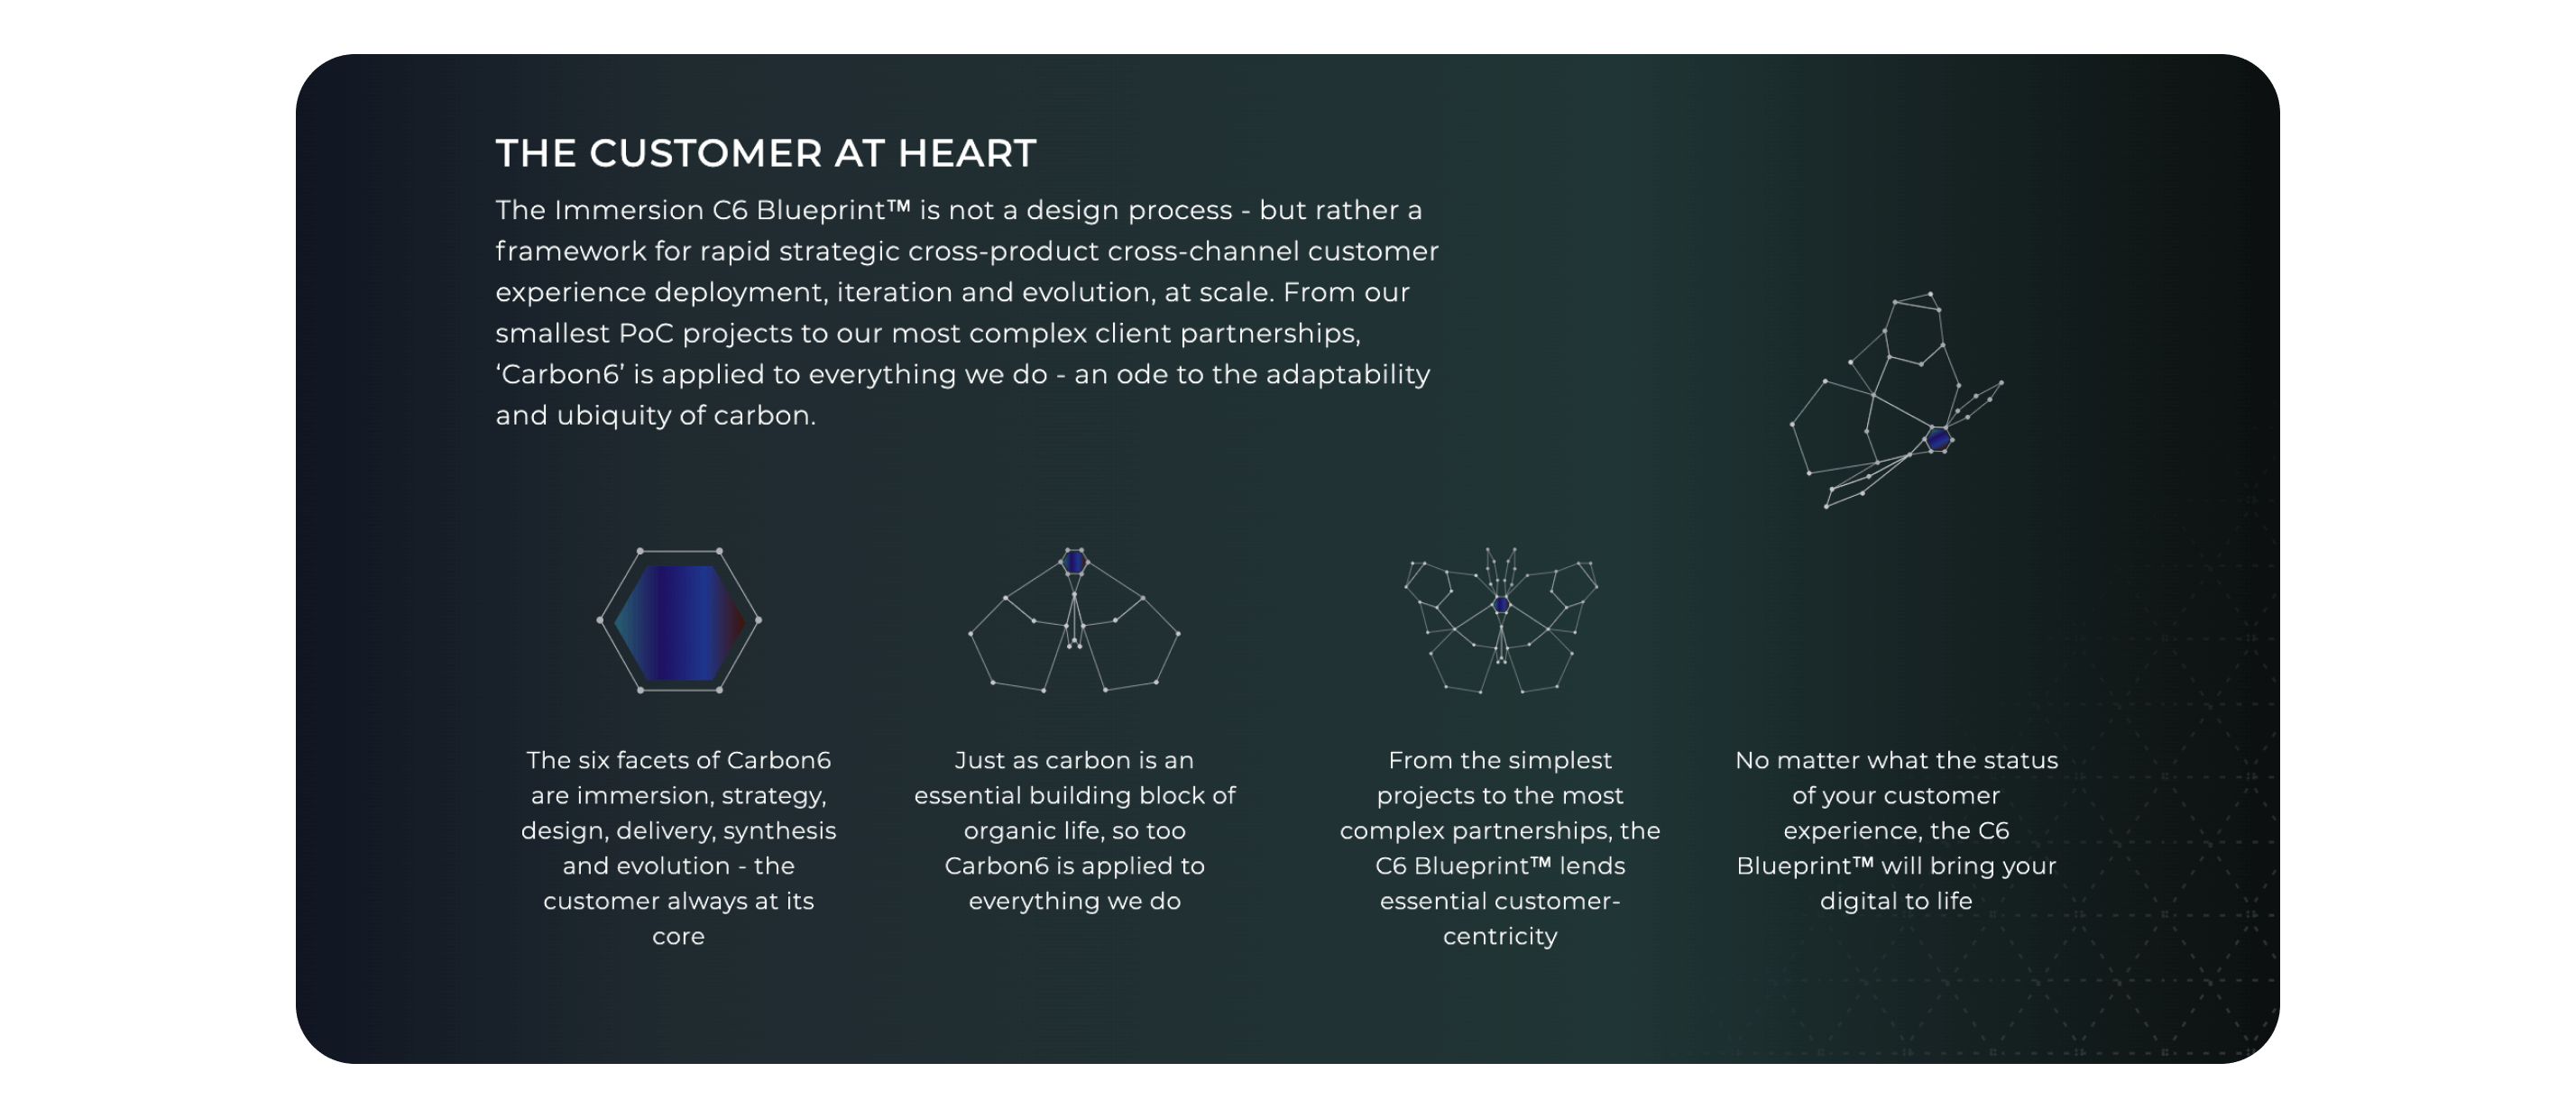 The C6 Blueprint framework by Immersion UX defines their scientific and human-centered approach to UX.